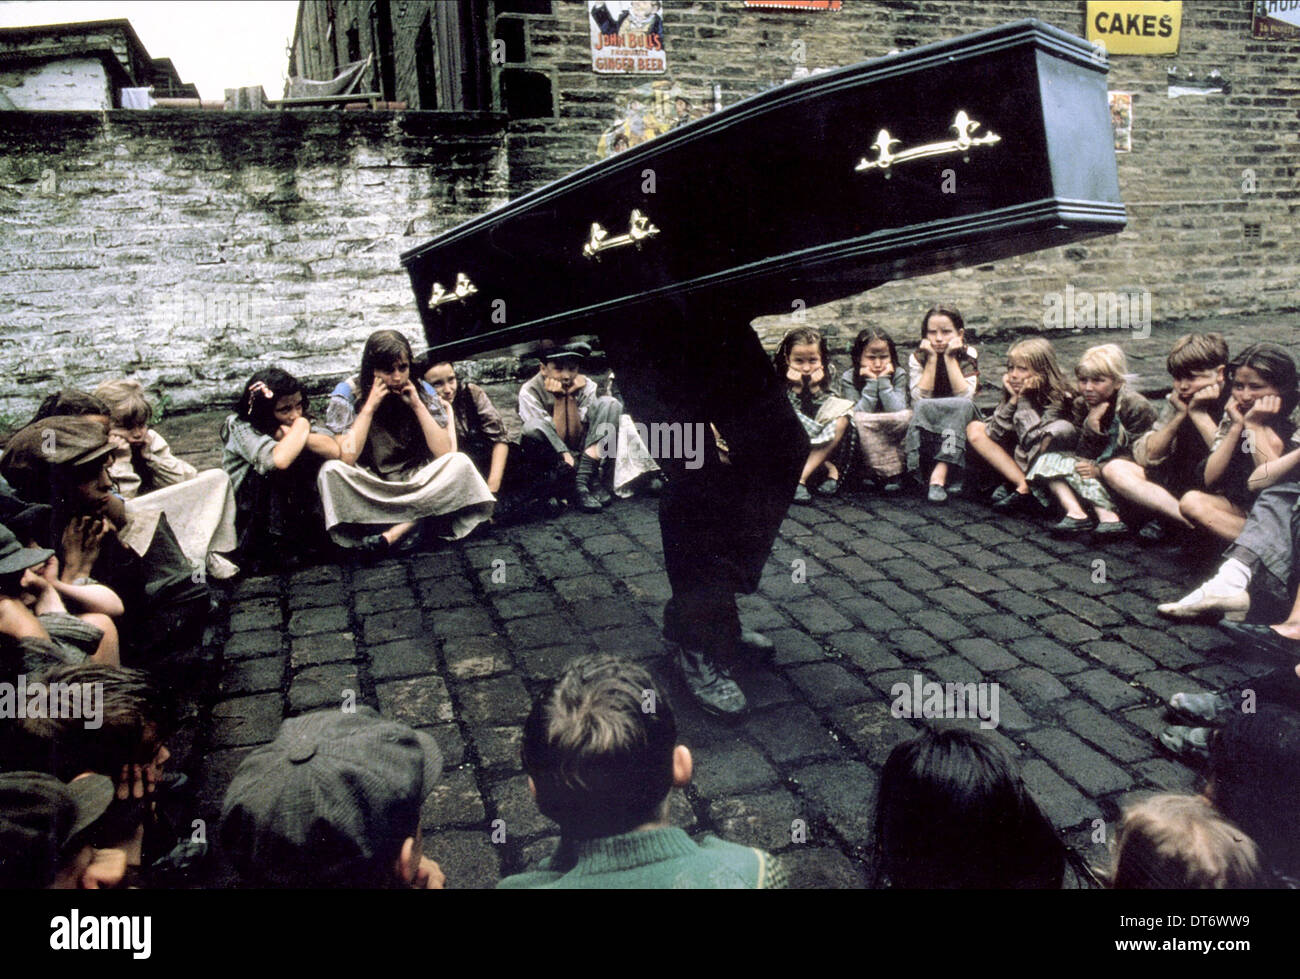 CHILDREN, COFFIN SCENE, MONTY PYTHON'S THE MEANING OF LIFE, 1983 - Stock Image